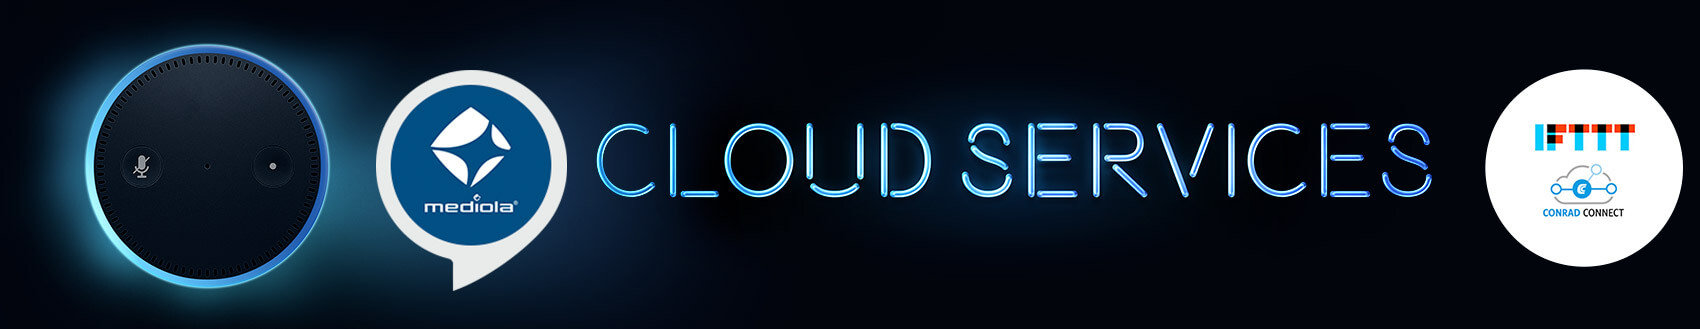 cloud services banner